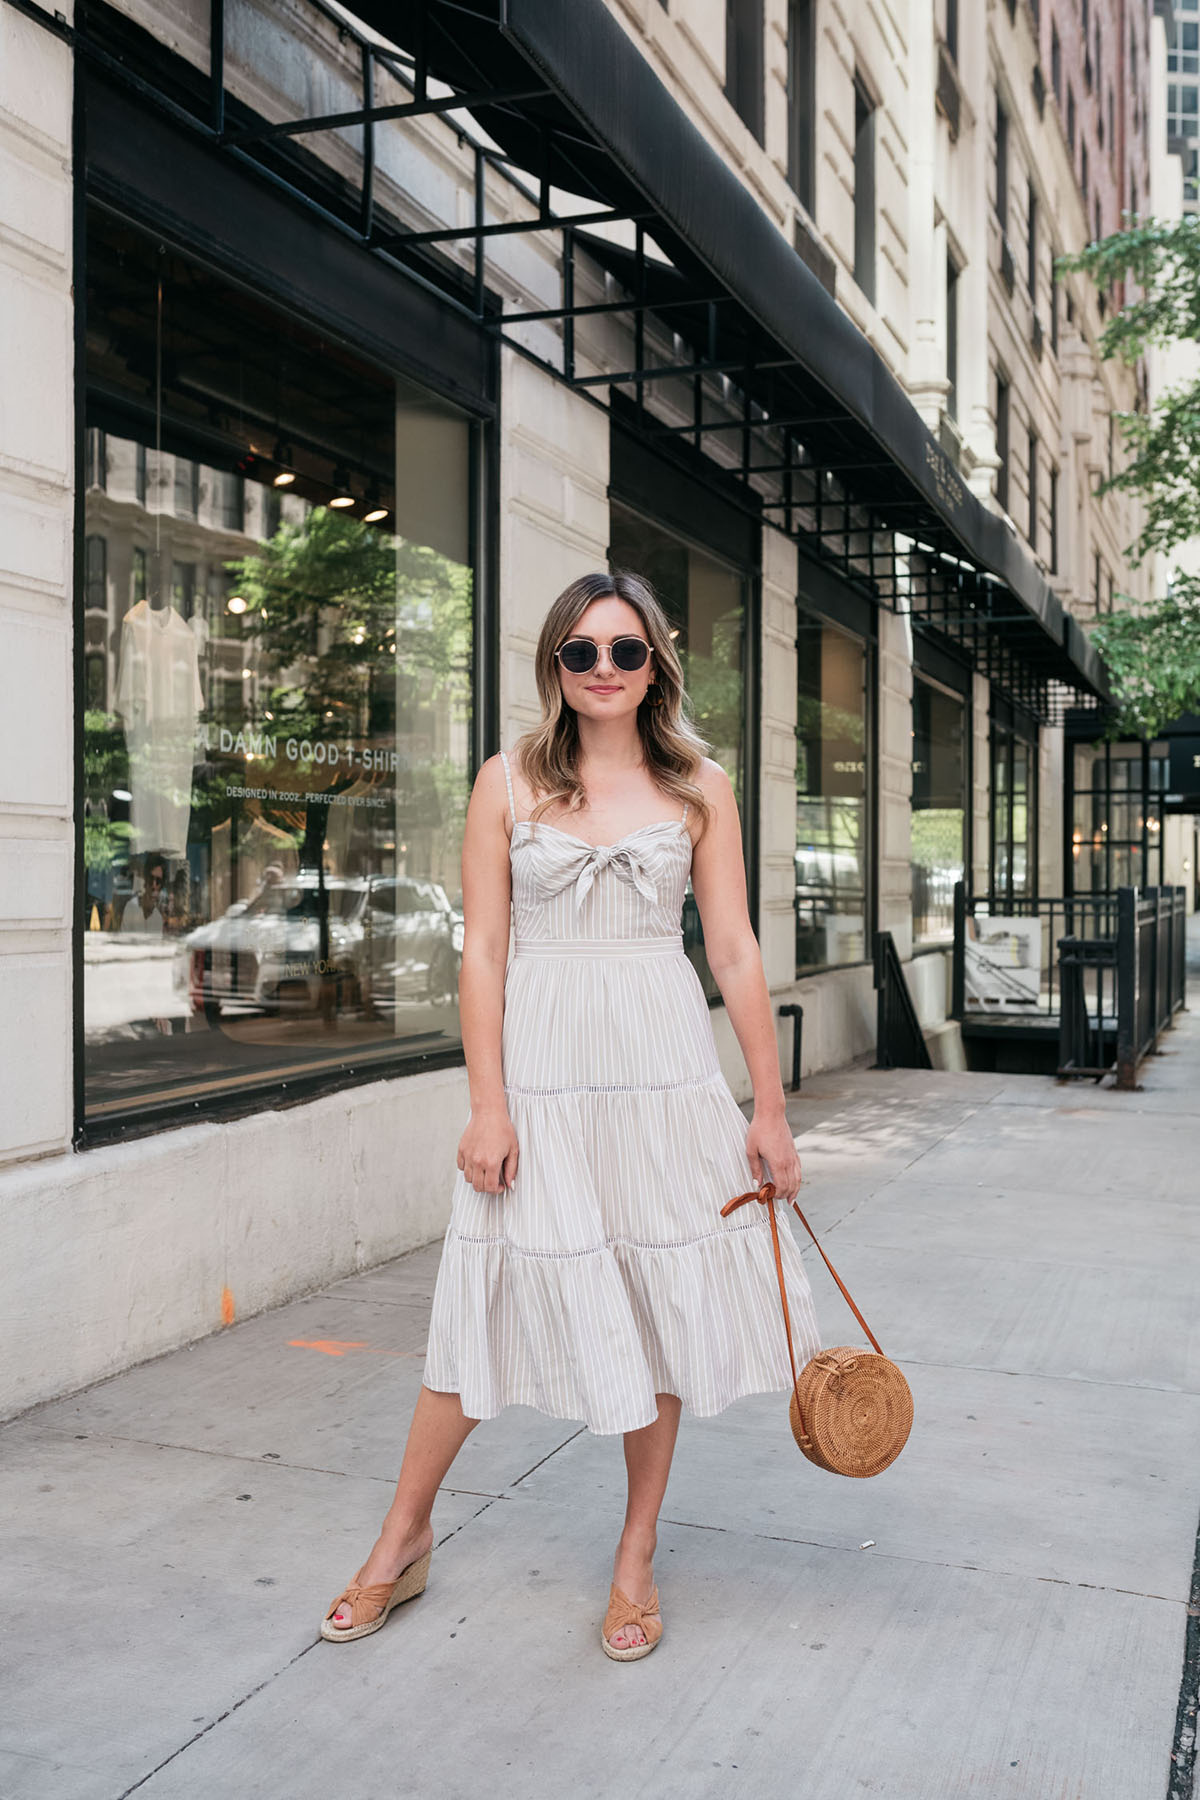 Bows & Sequins wearing a neutral striped midi dress with a round rattan handbag in Chicago.